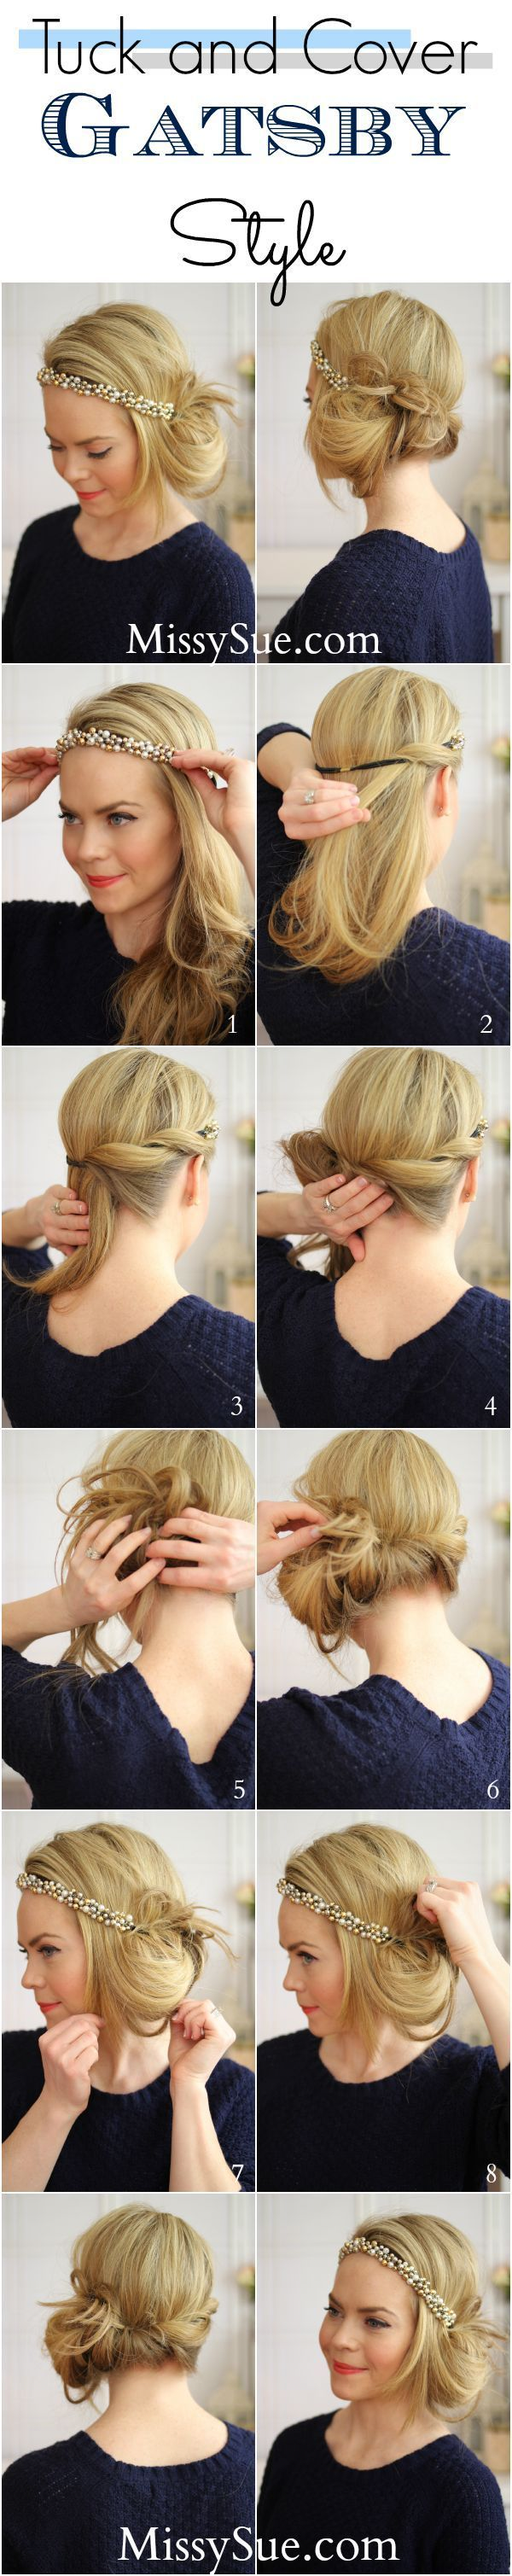 DIY Cosmetic Hacks You Need To Know About Youre So Pretty - Diy bun cover